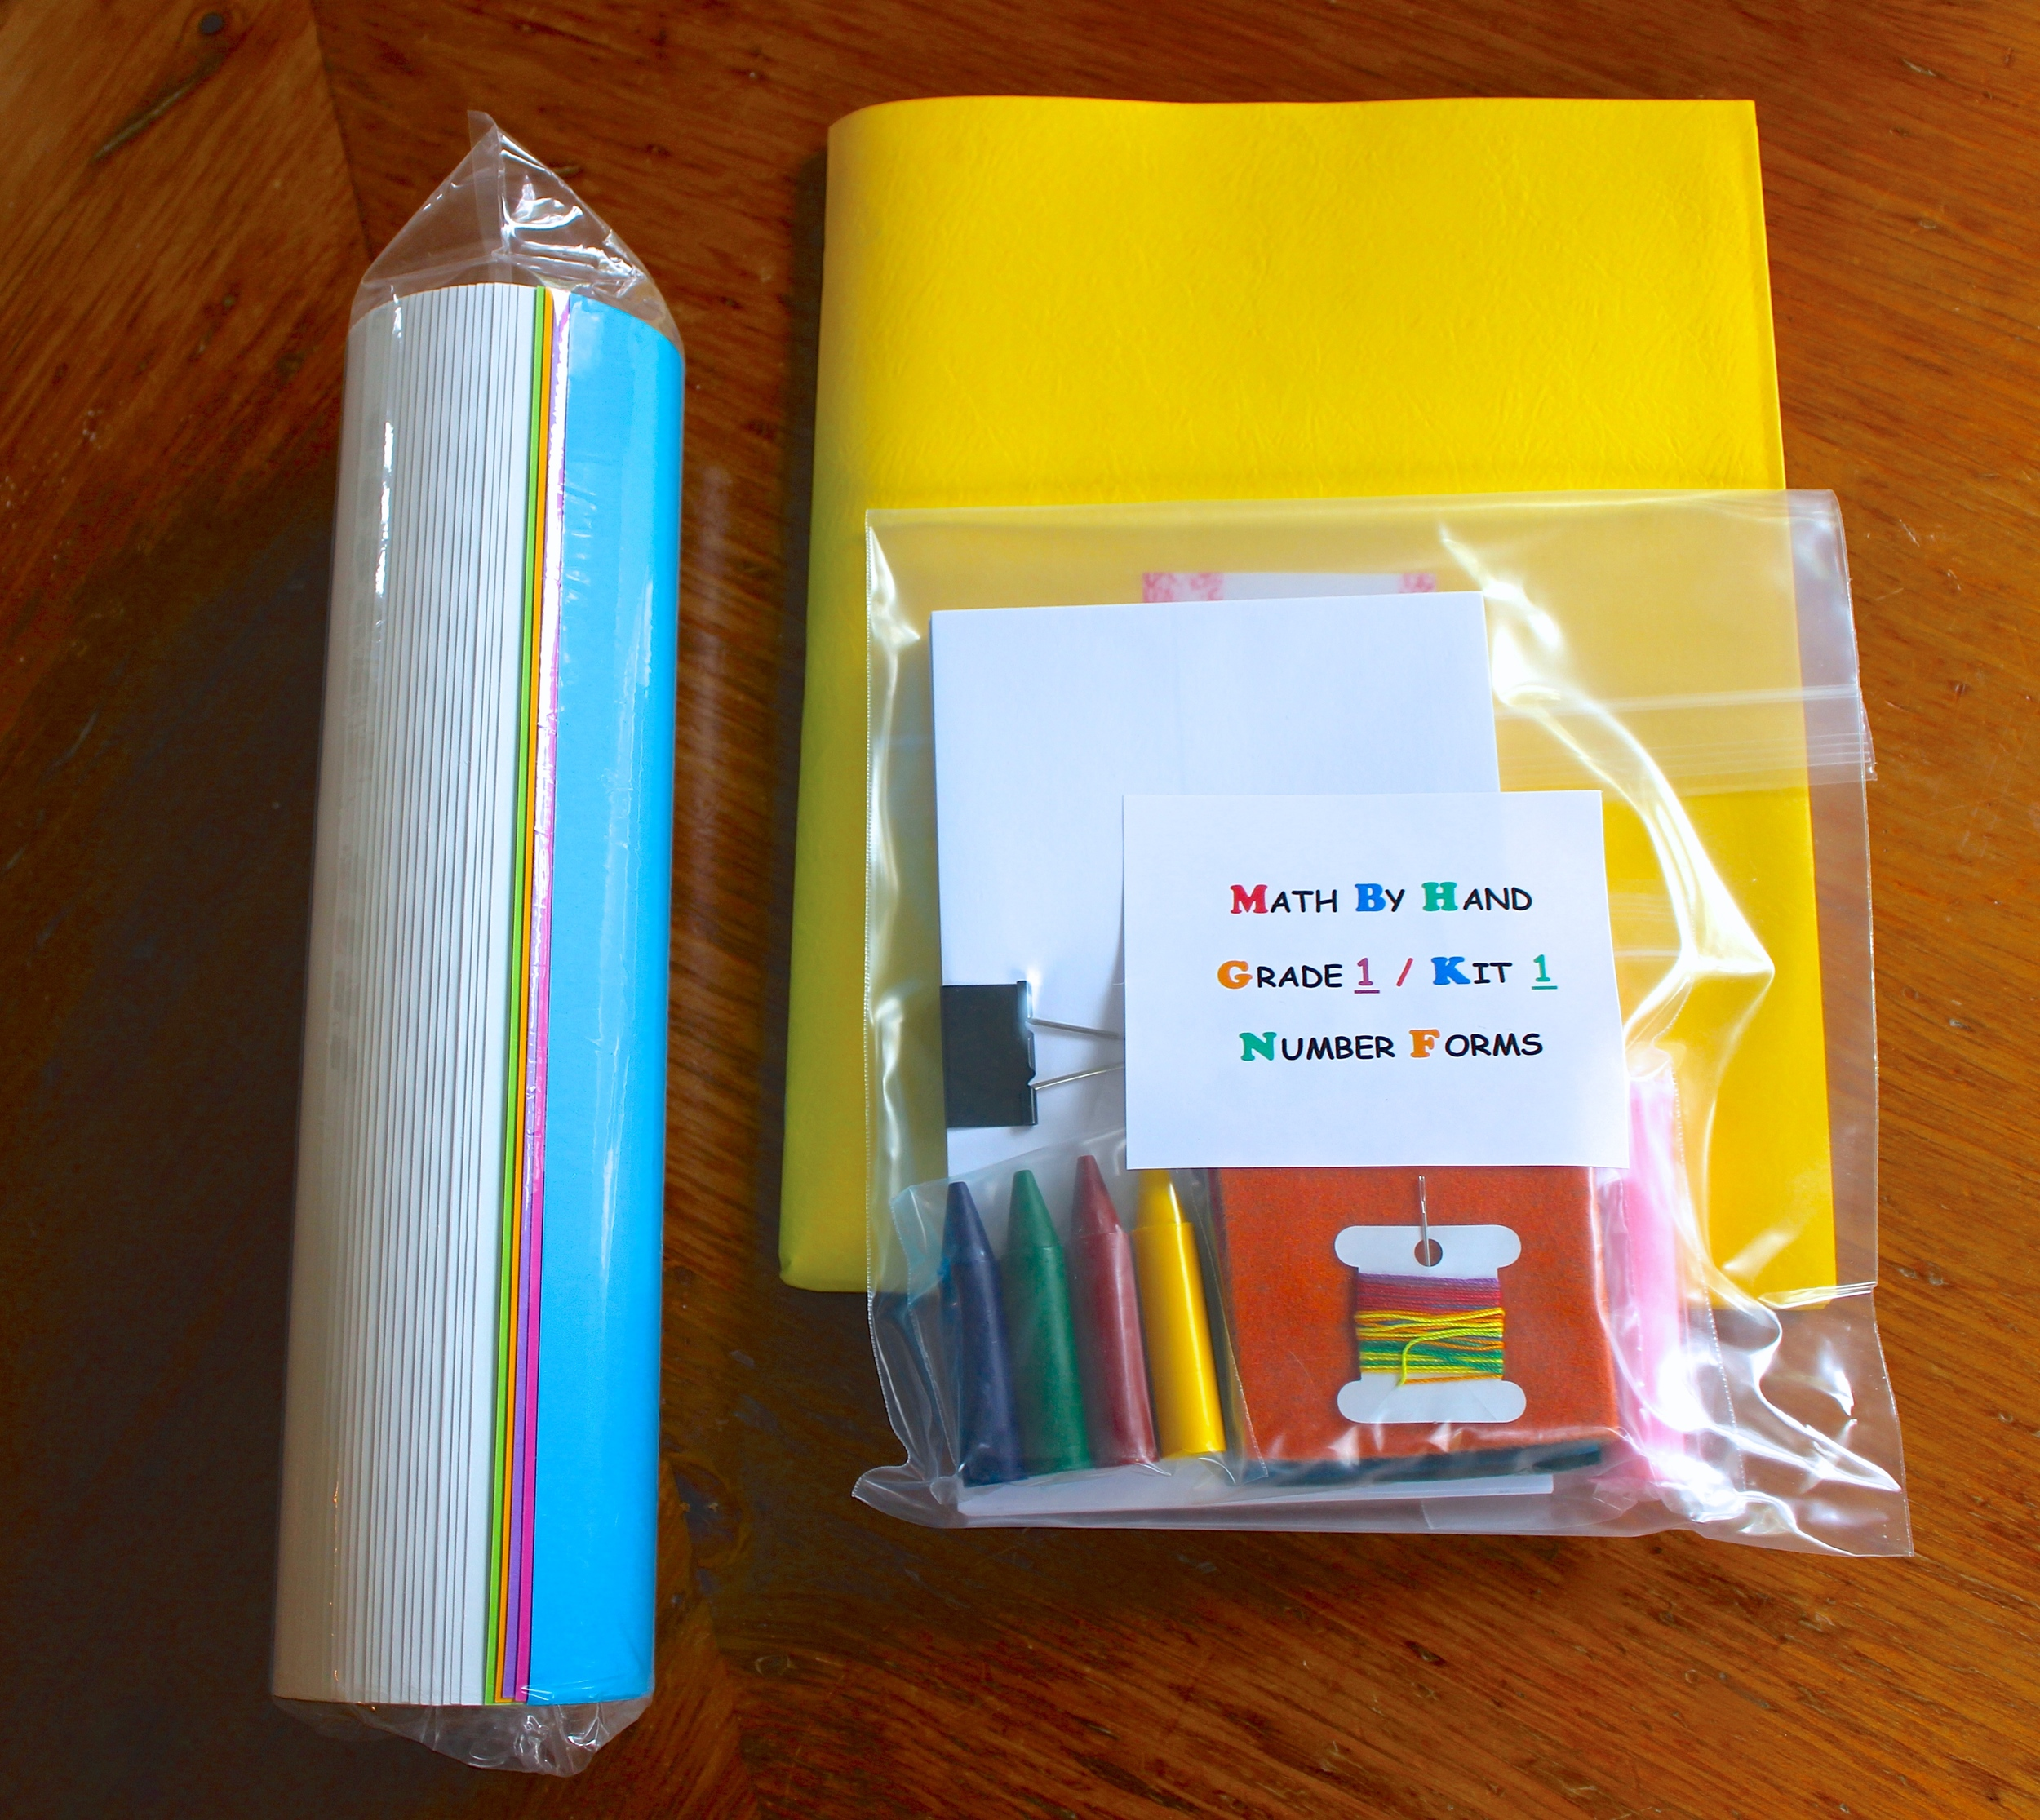 Math By Hand Waldorf Math Curriculum Kit 1 Grade Review Contents